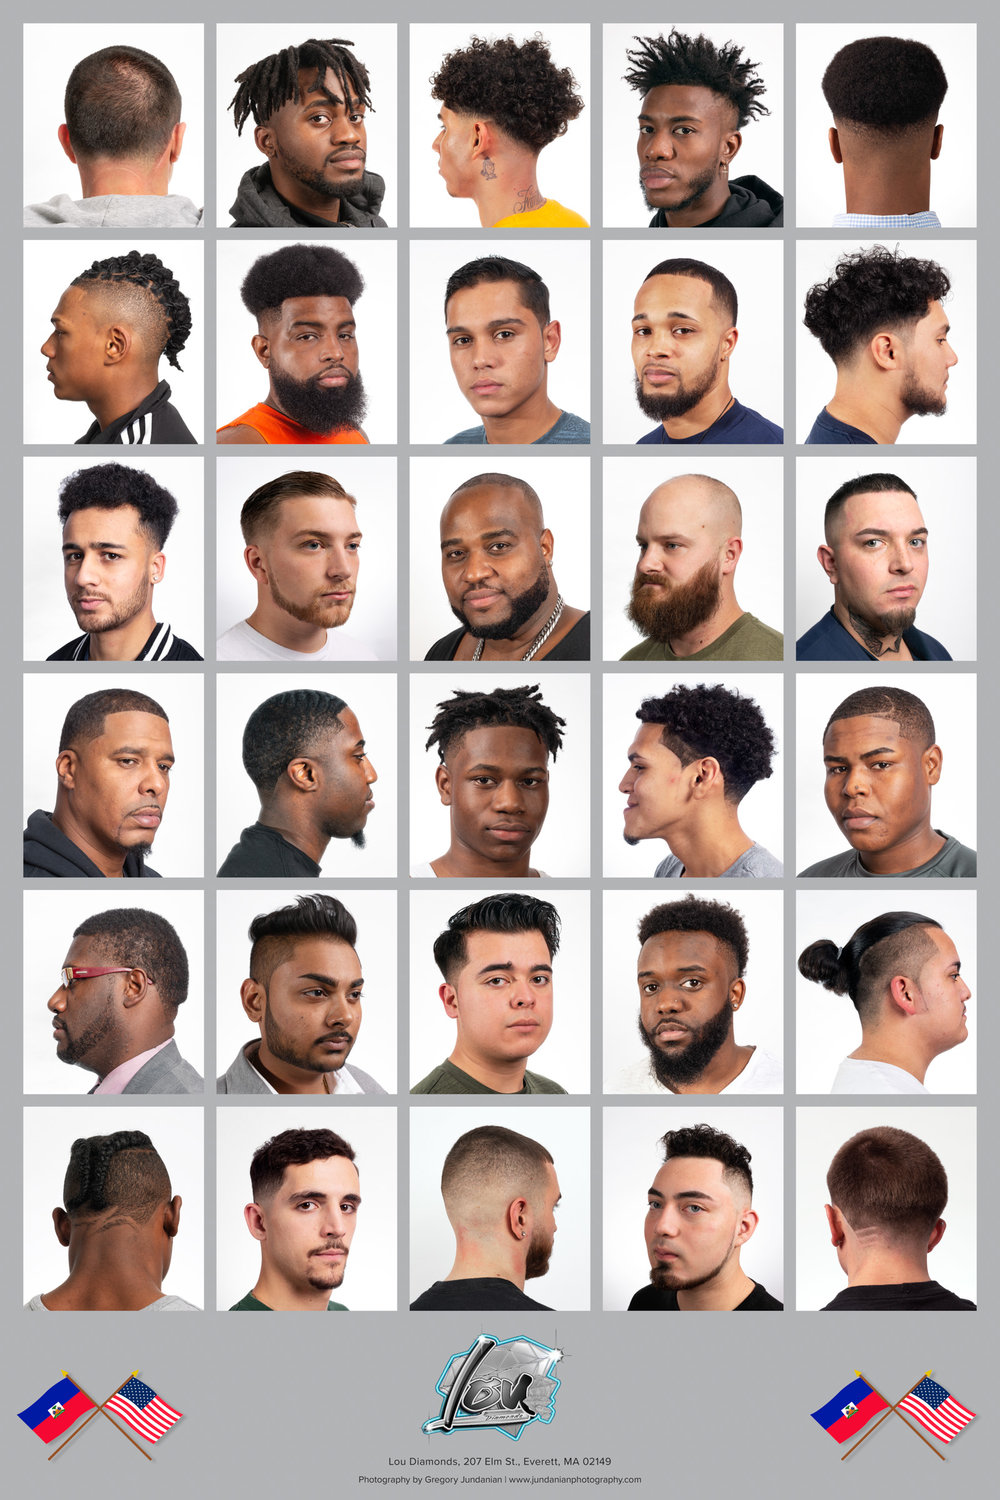 Lou Diamonds' Barbershop, Everett, MA